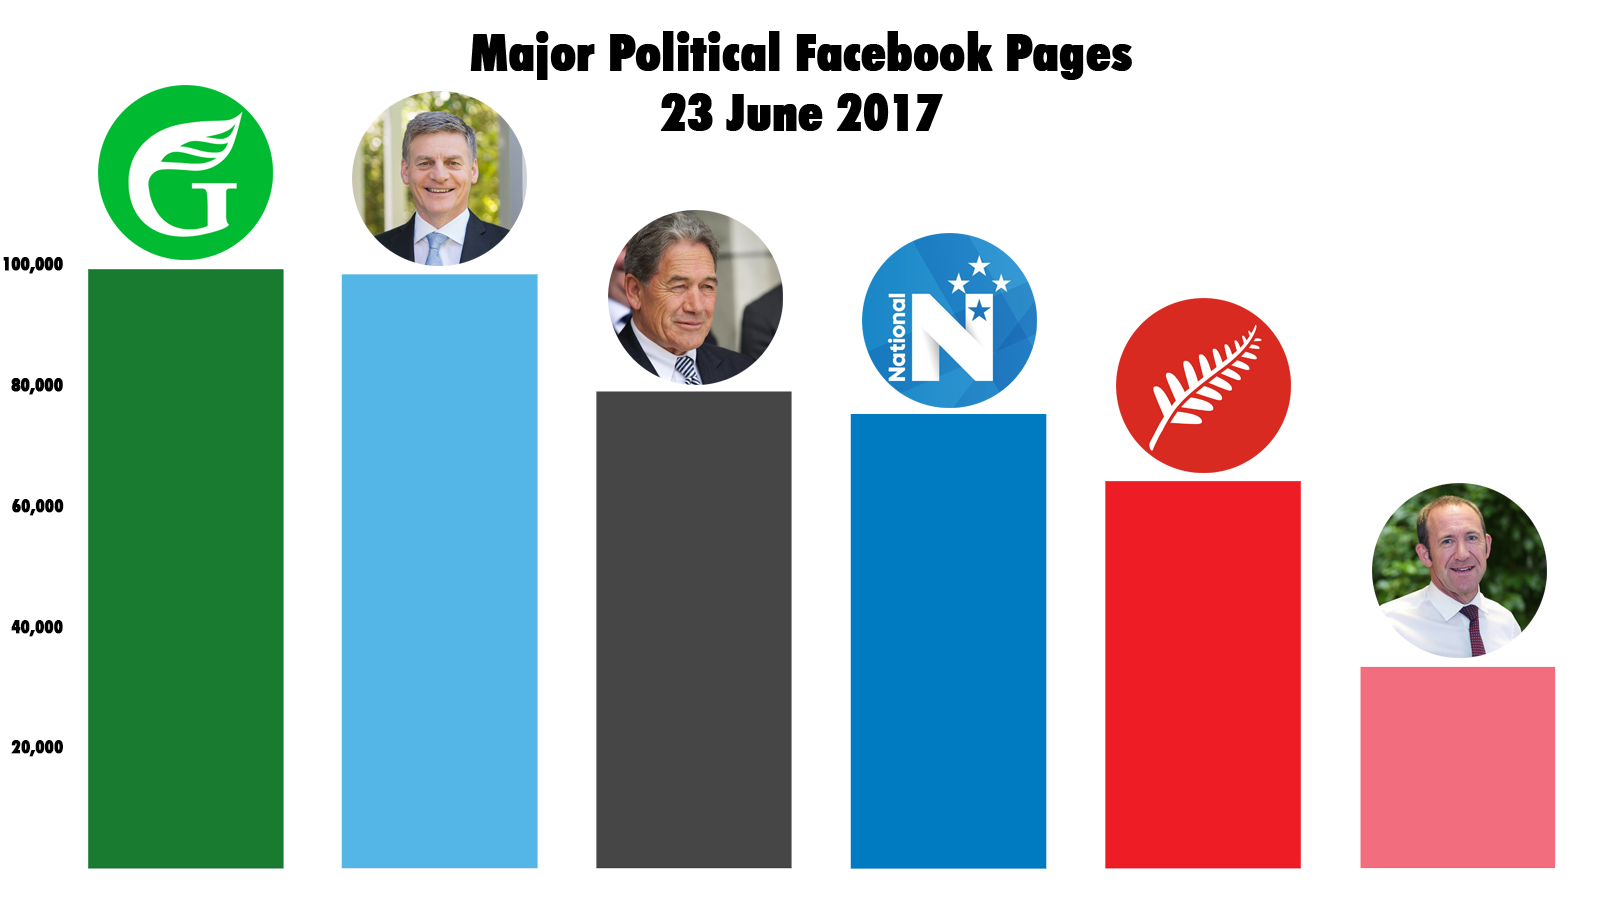 Comparison of political Facebook pages as of the commencement of the Regulated Period, three months out from polling day.